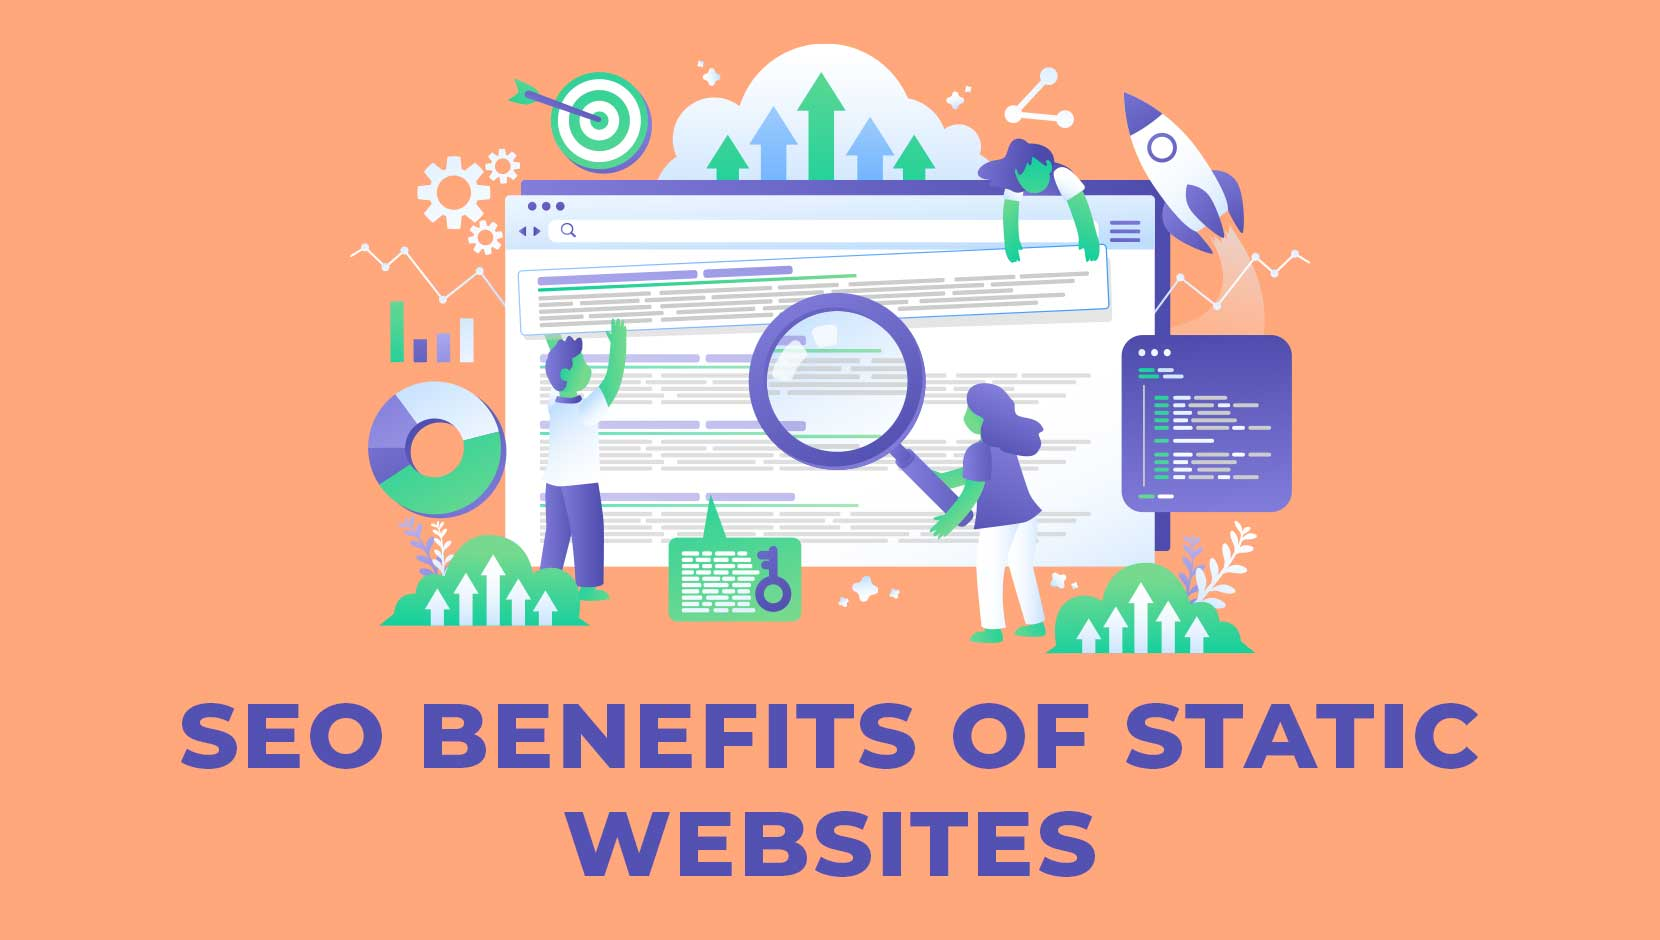 5 SEO Benefits of FLATsite Static Websites